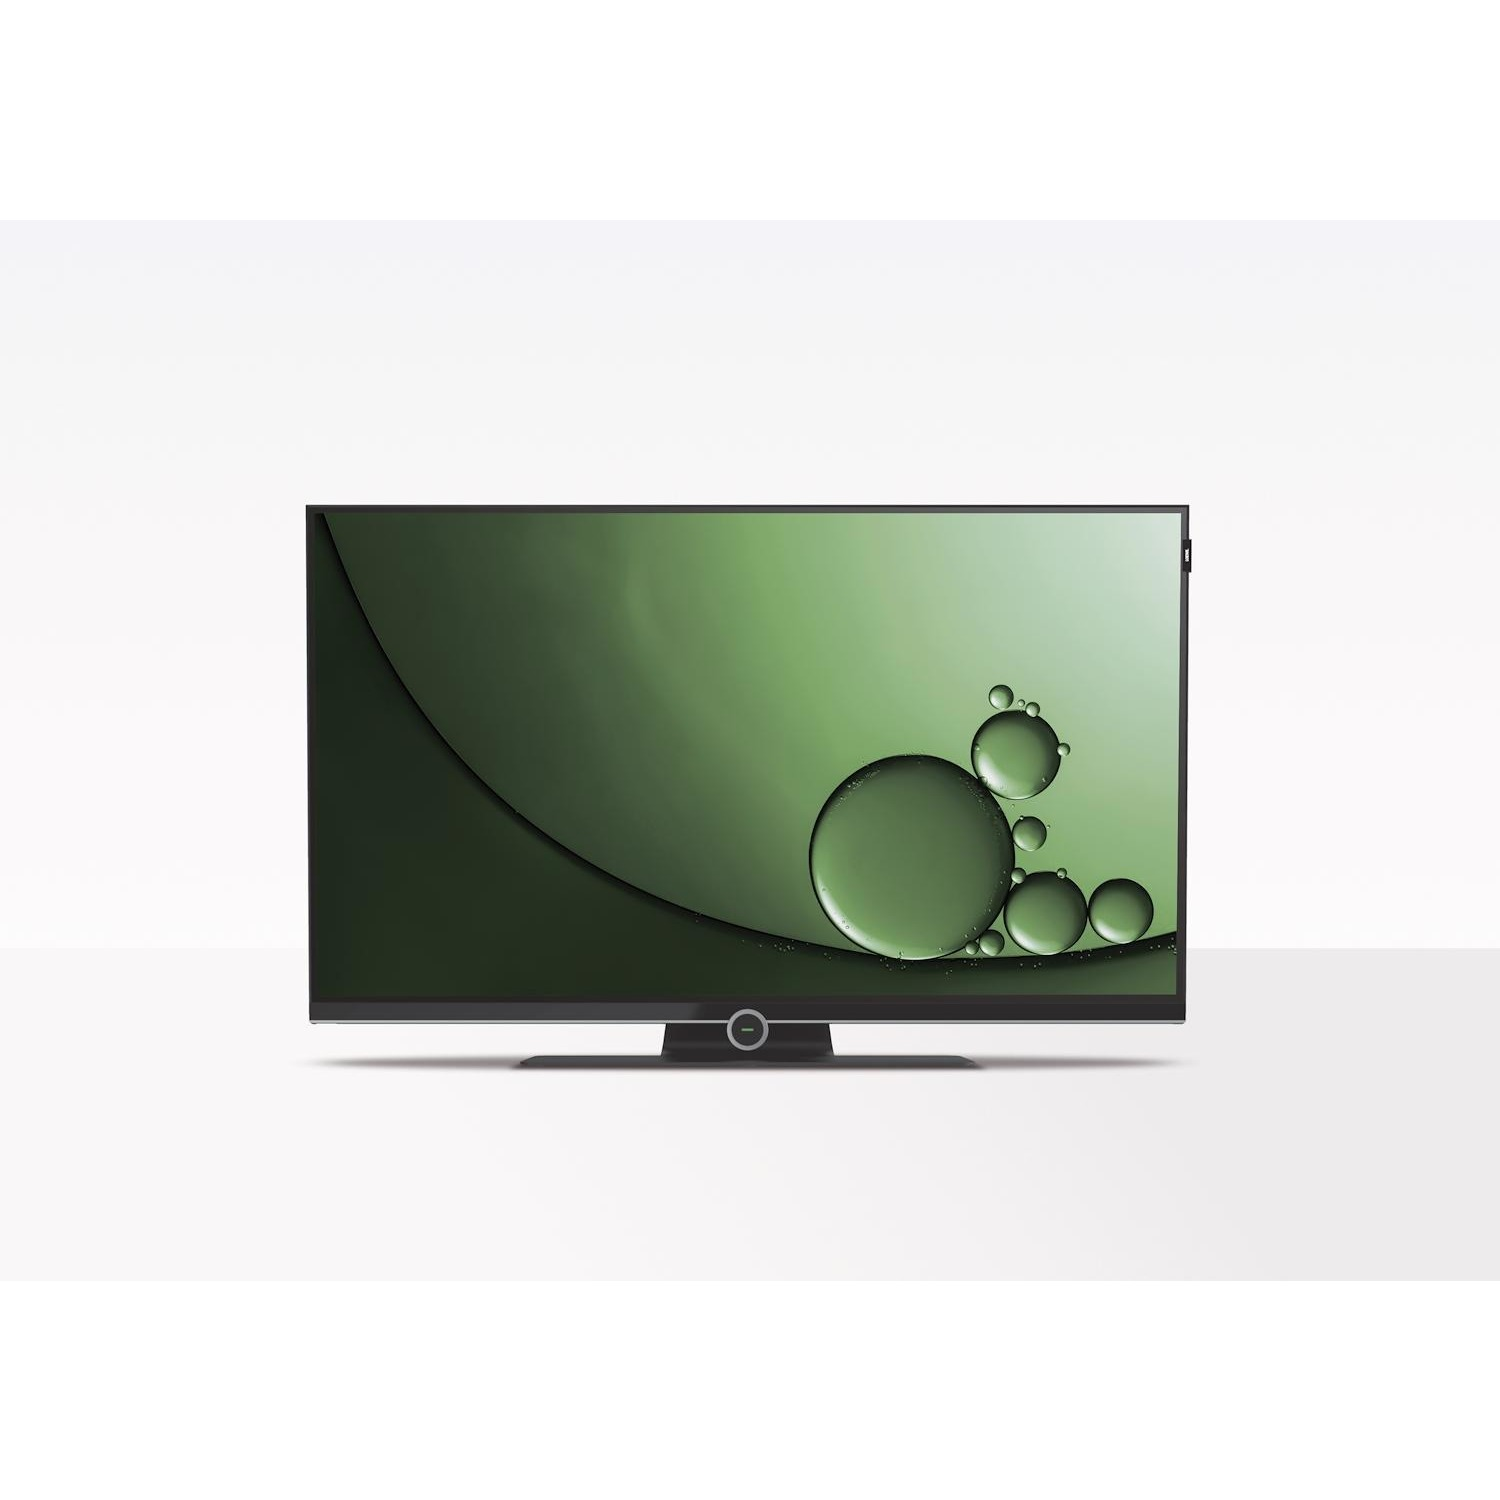 Immagine per TV LED Smart 4K UHD Loewe Bild 1.43 black nero da DIMOStore